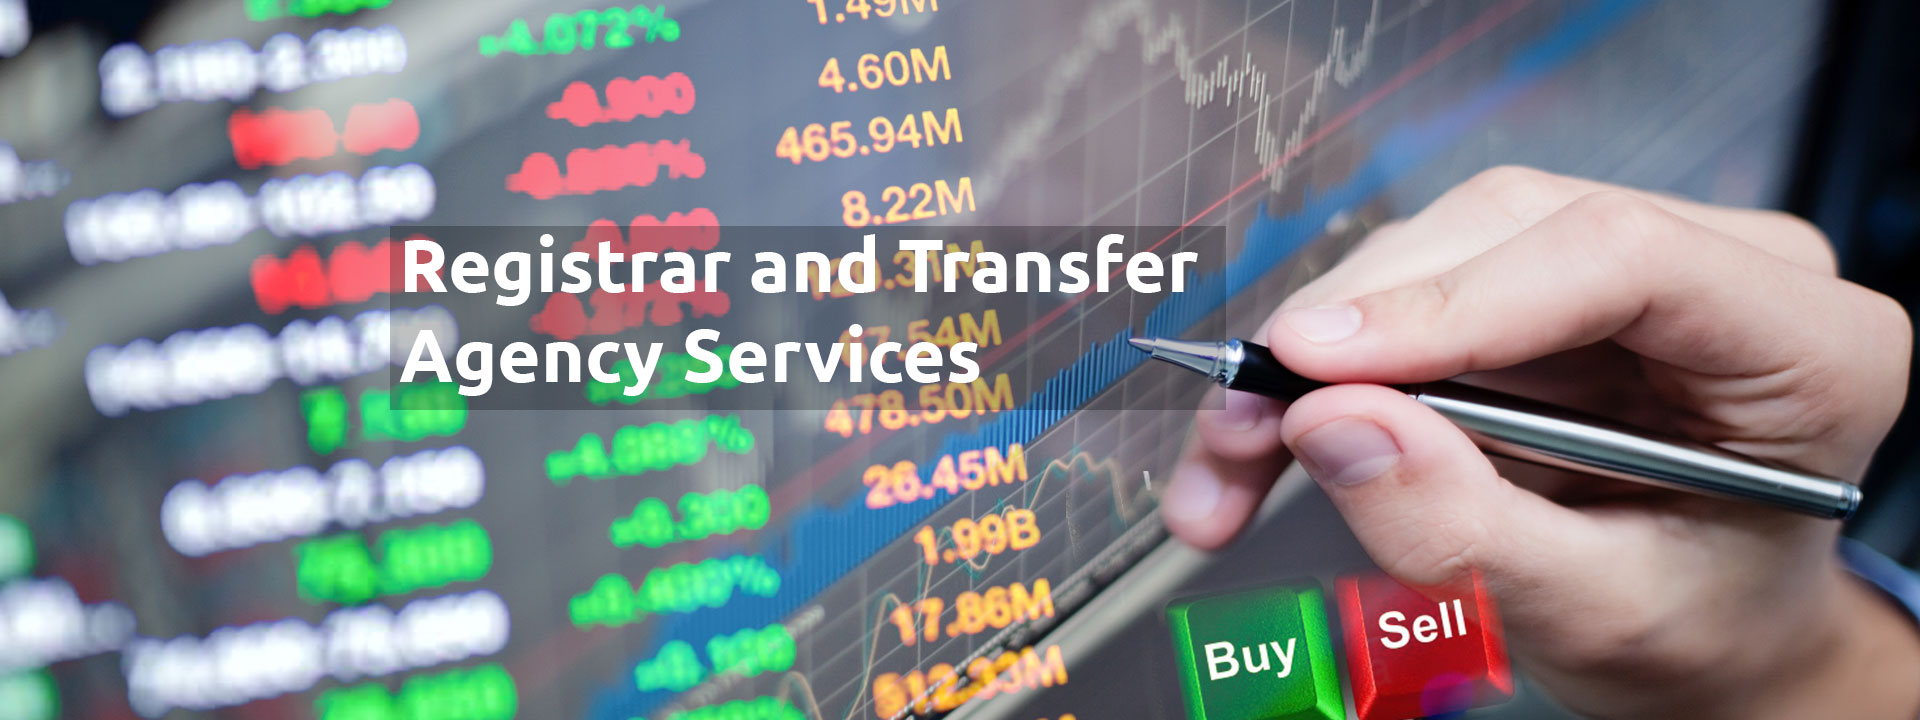 Registar & Transfer Agency Services